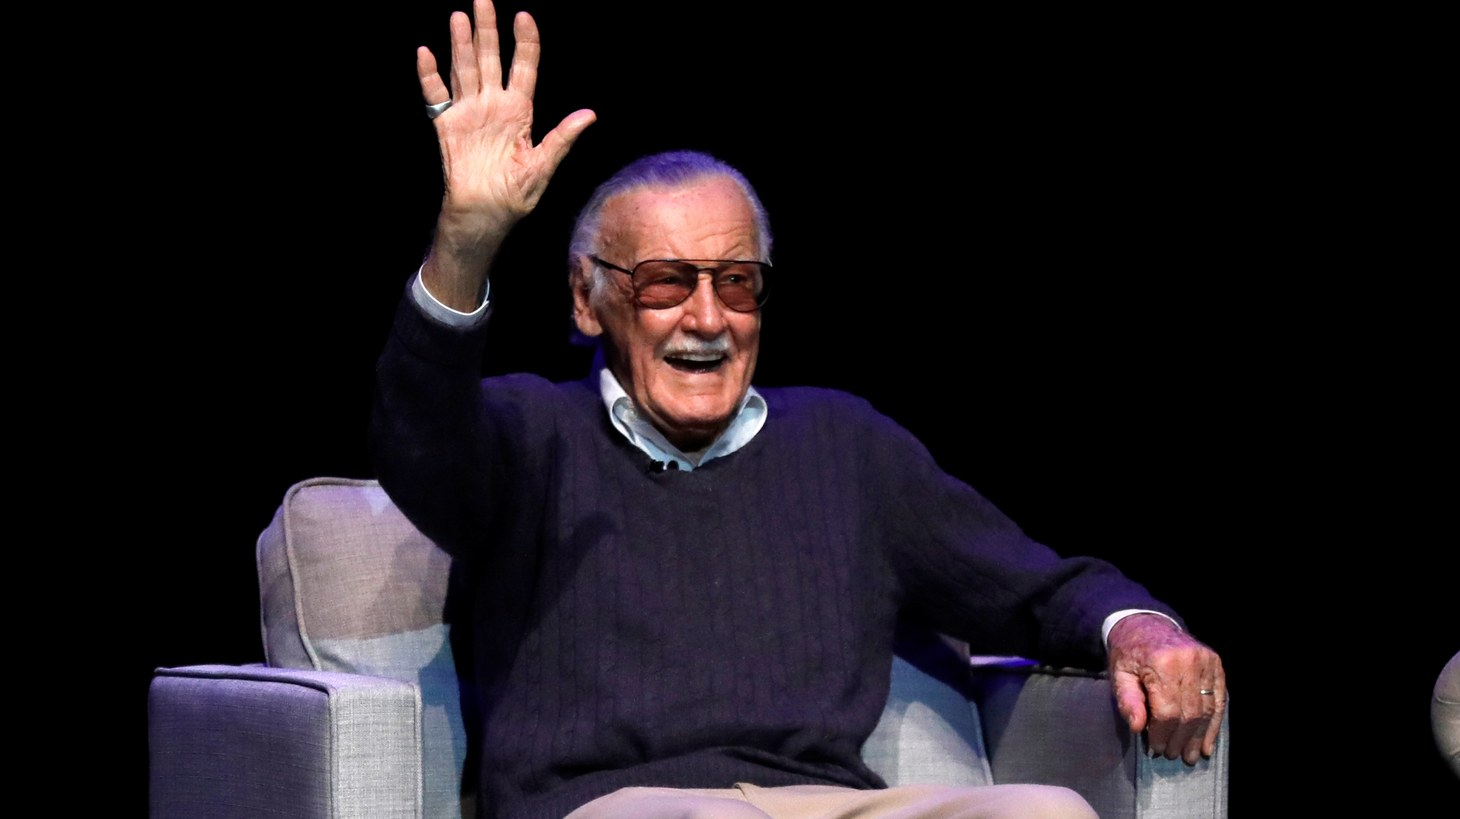 """Marvel Comics co-creator Stan Lee attends a tribute event """"Extraordinary: Stan Lee"""" at the Saban Theatre in Beverly Hills, California, U.S., August 22, 2017."""